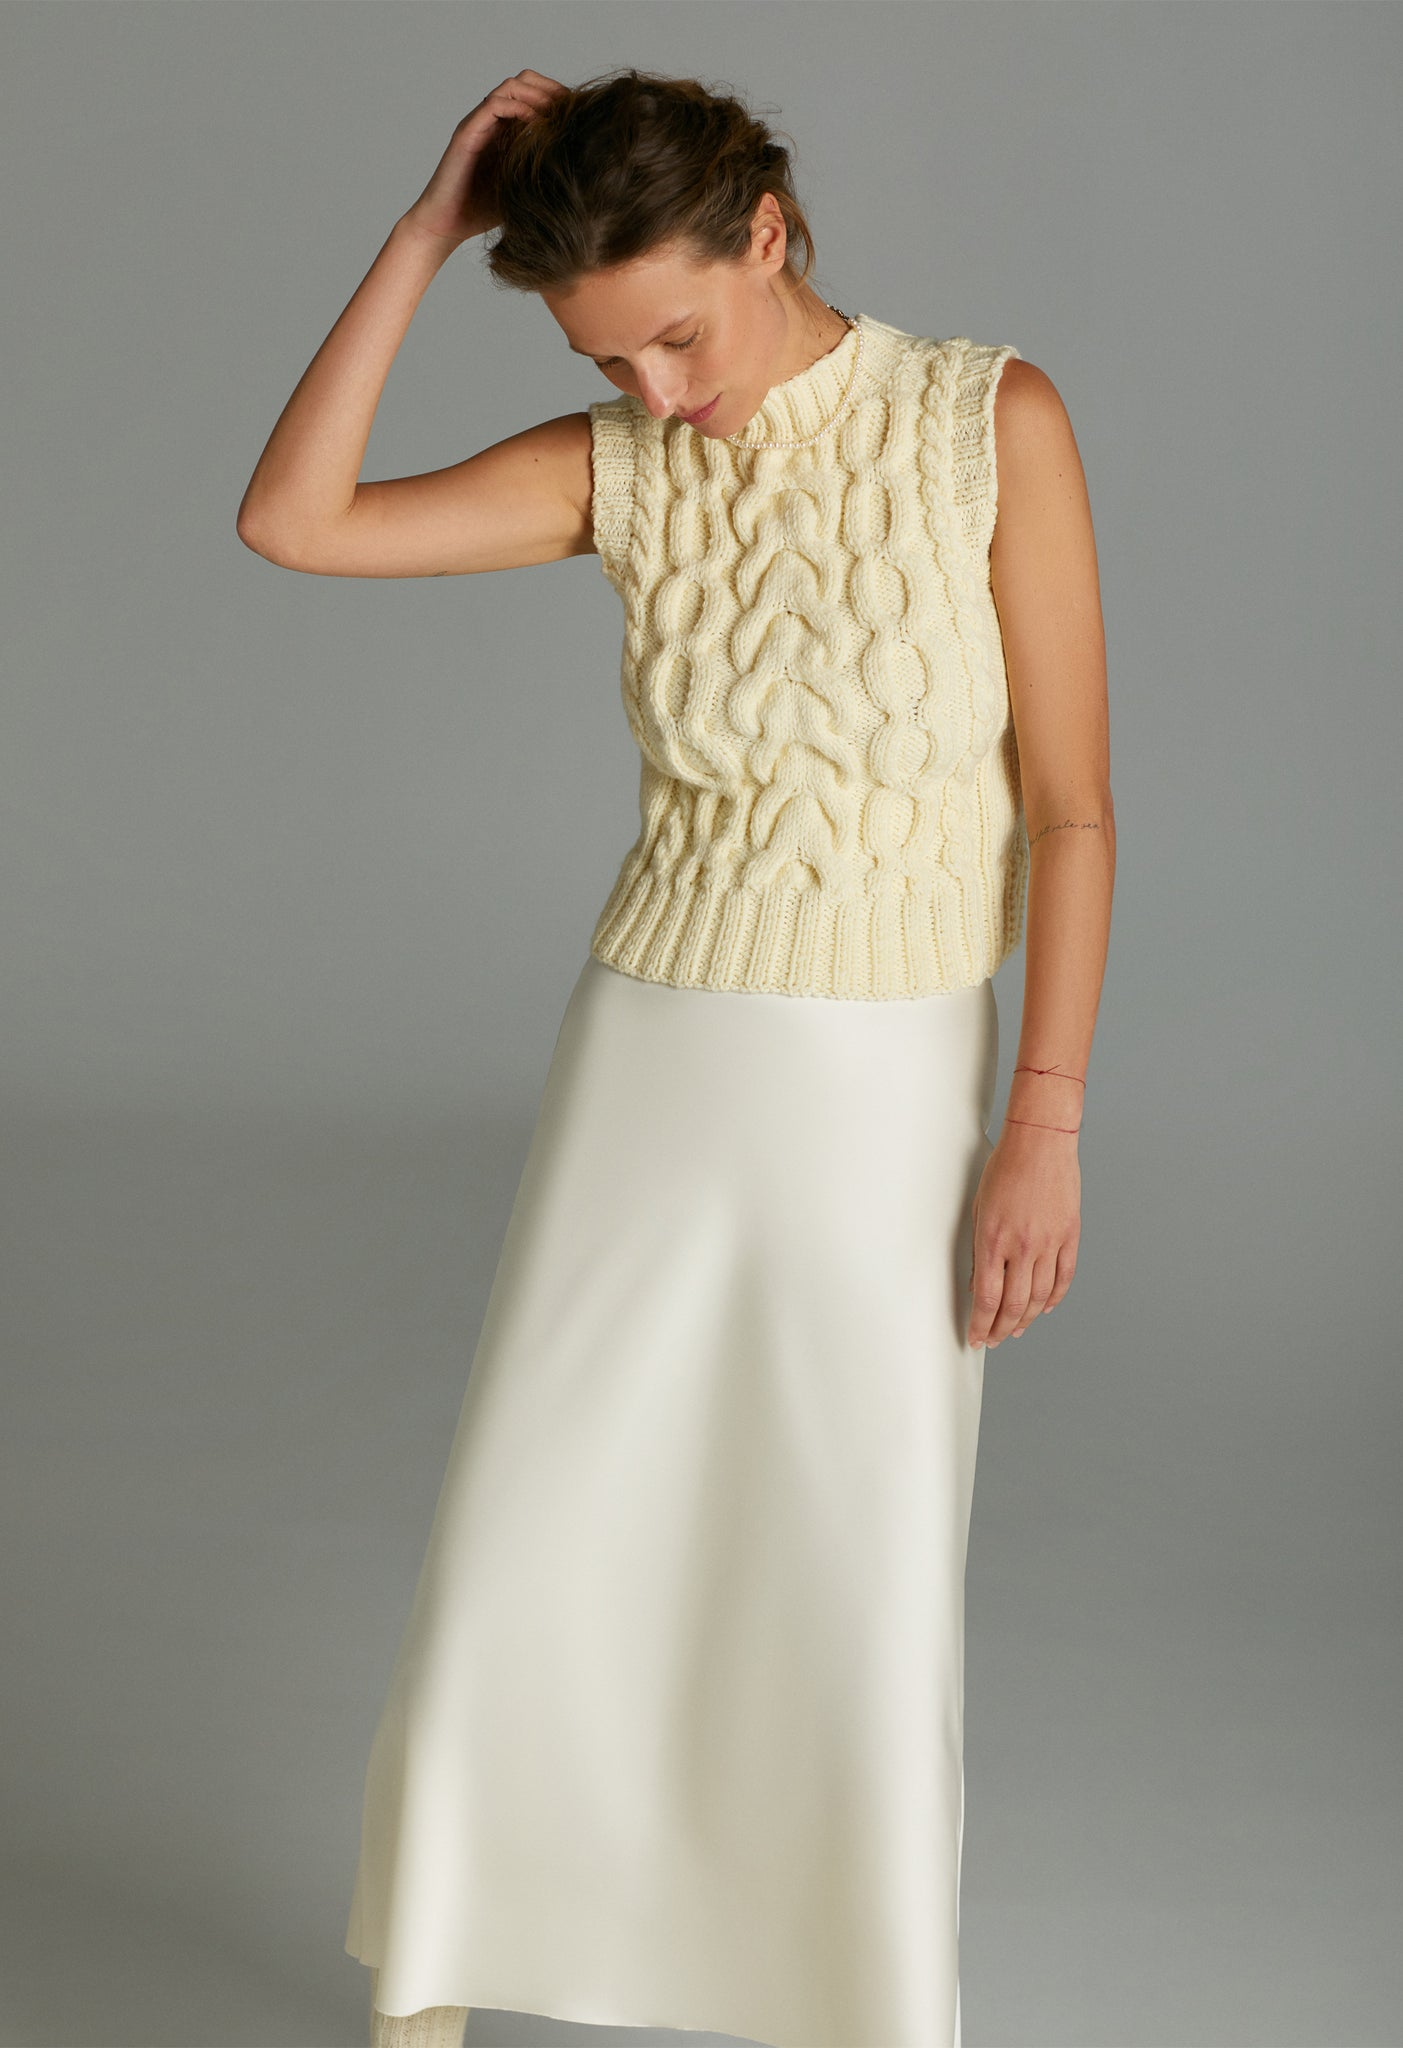 Model in Cream hand knitted vest